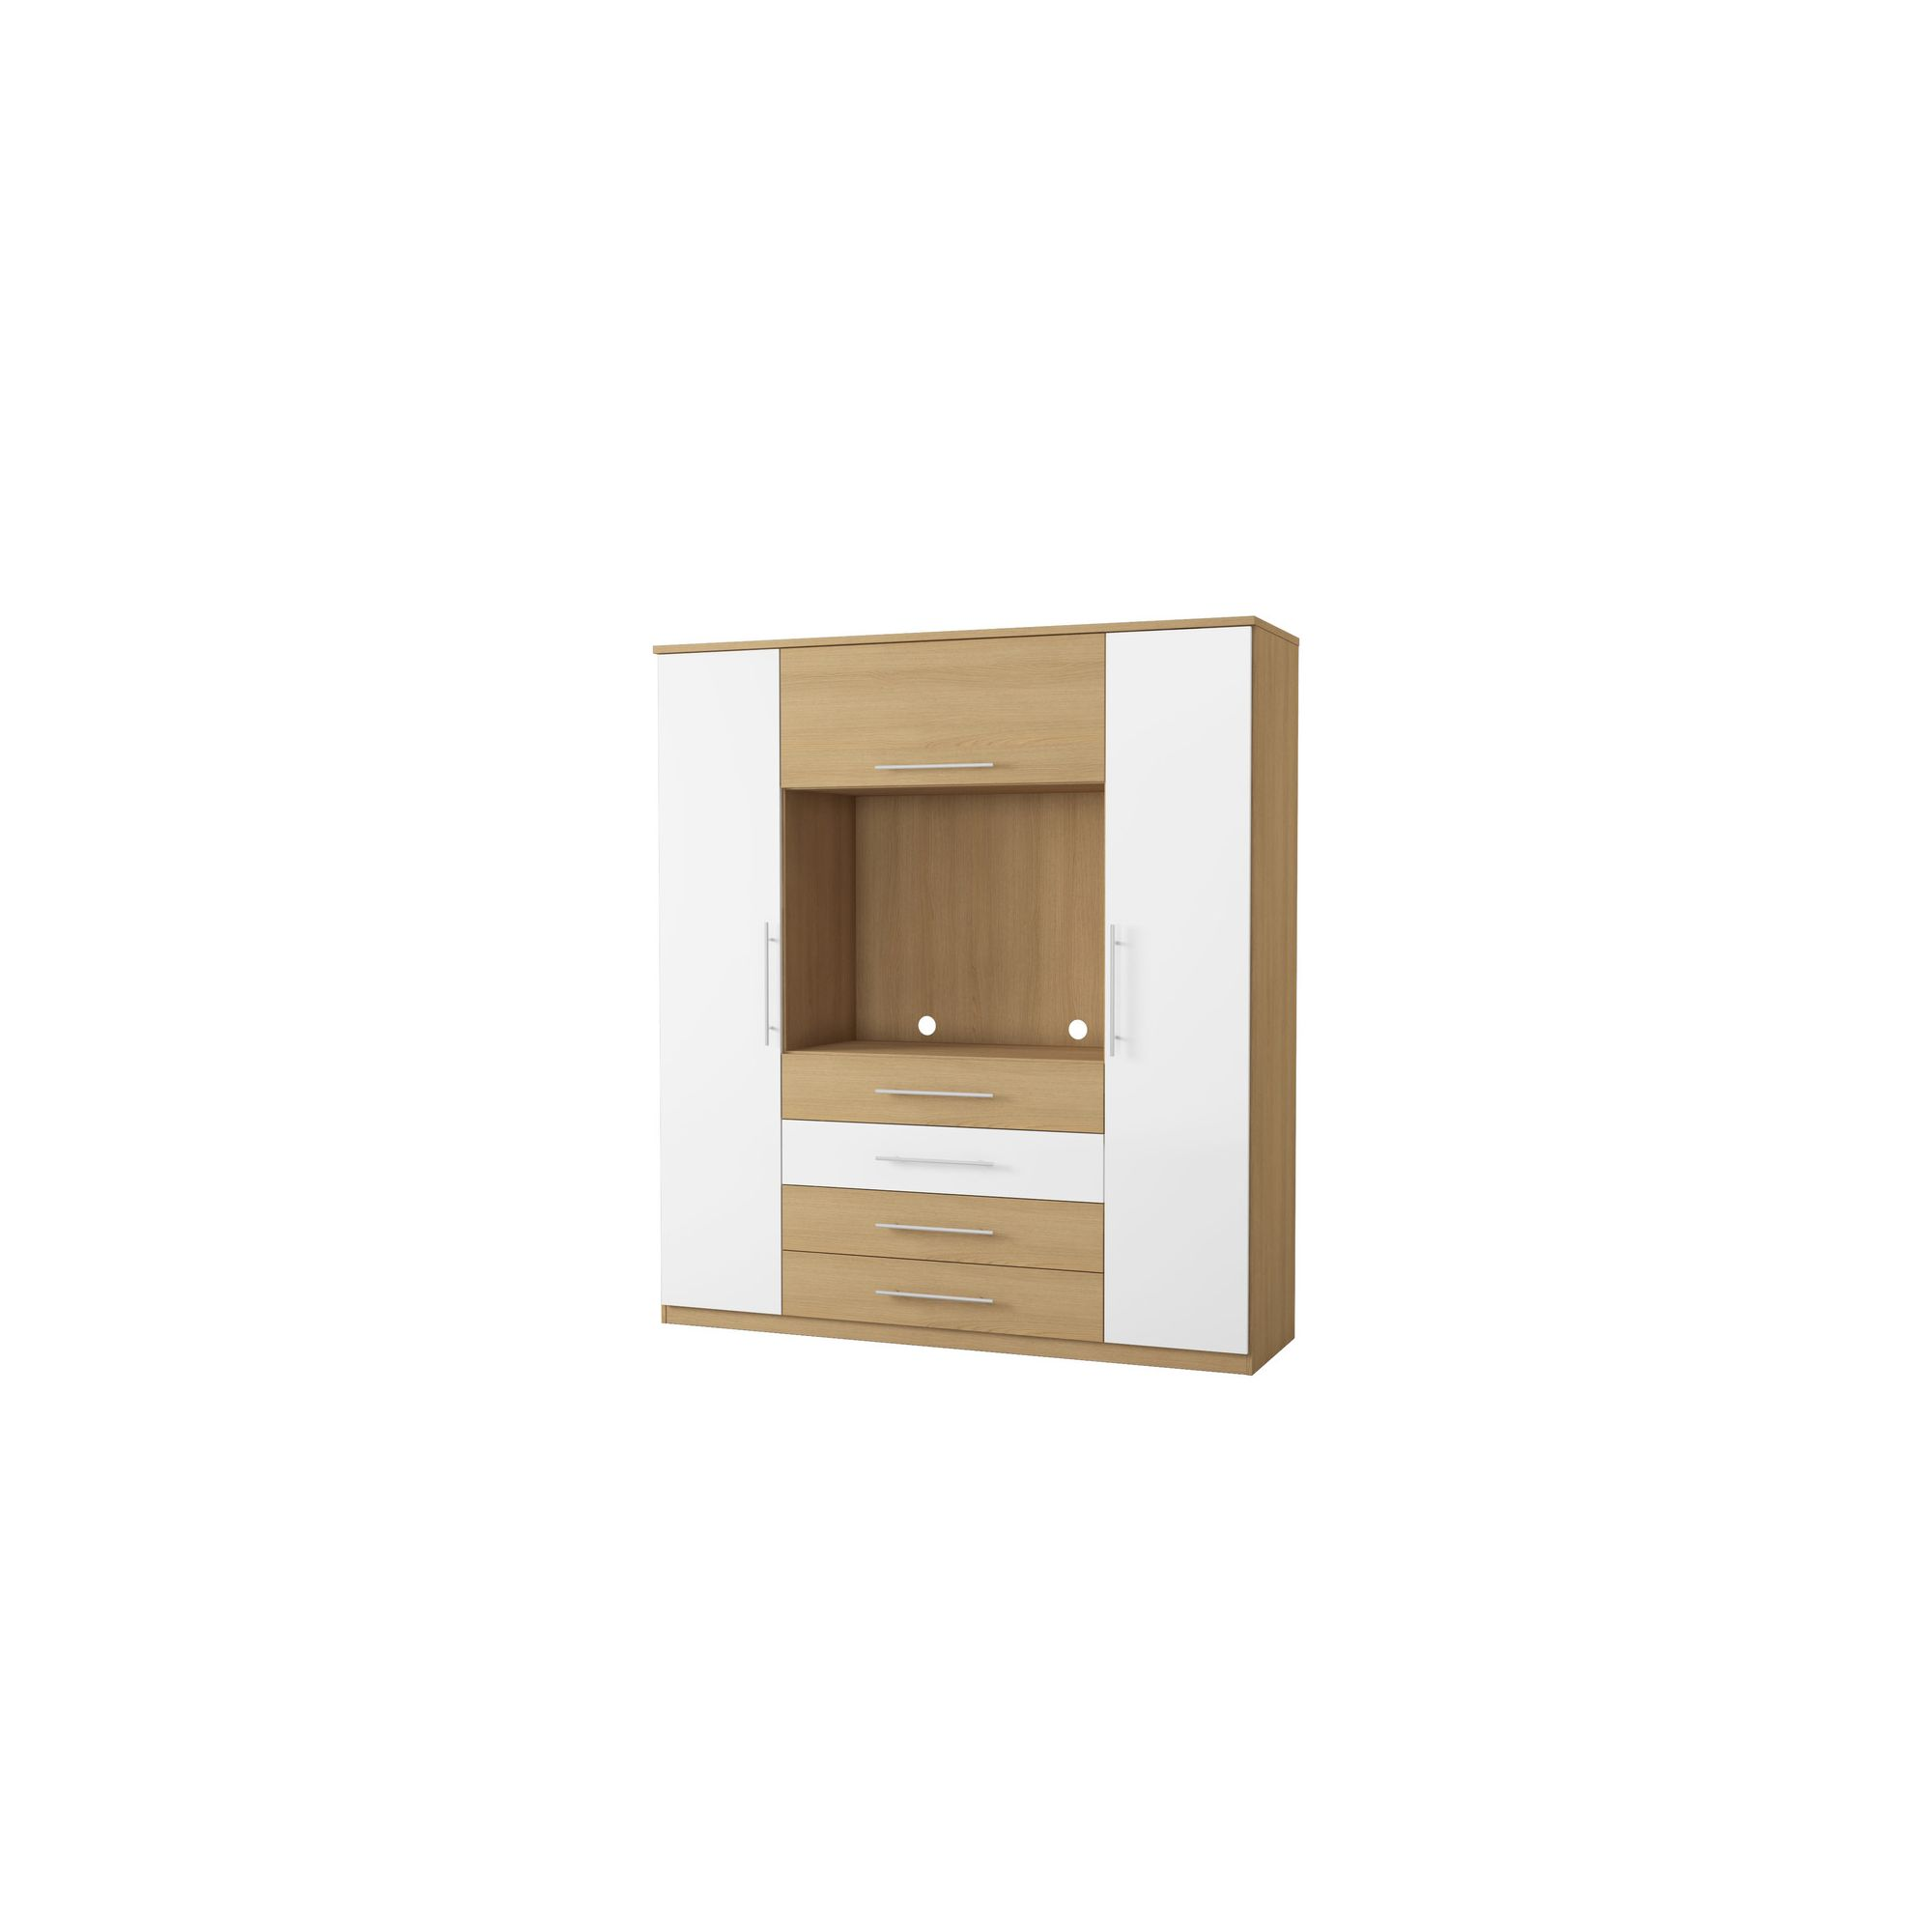 Urbane Designs Sorrento TV 2 Door 3 Drawer Wardrobe at Tesco Direct